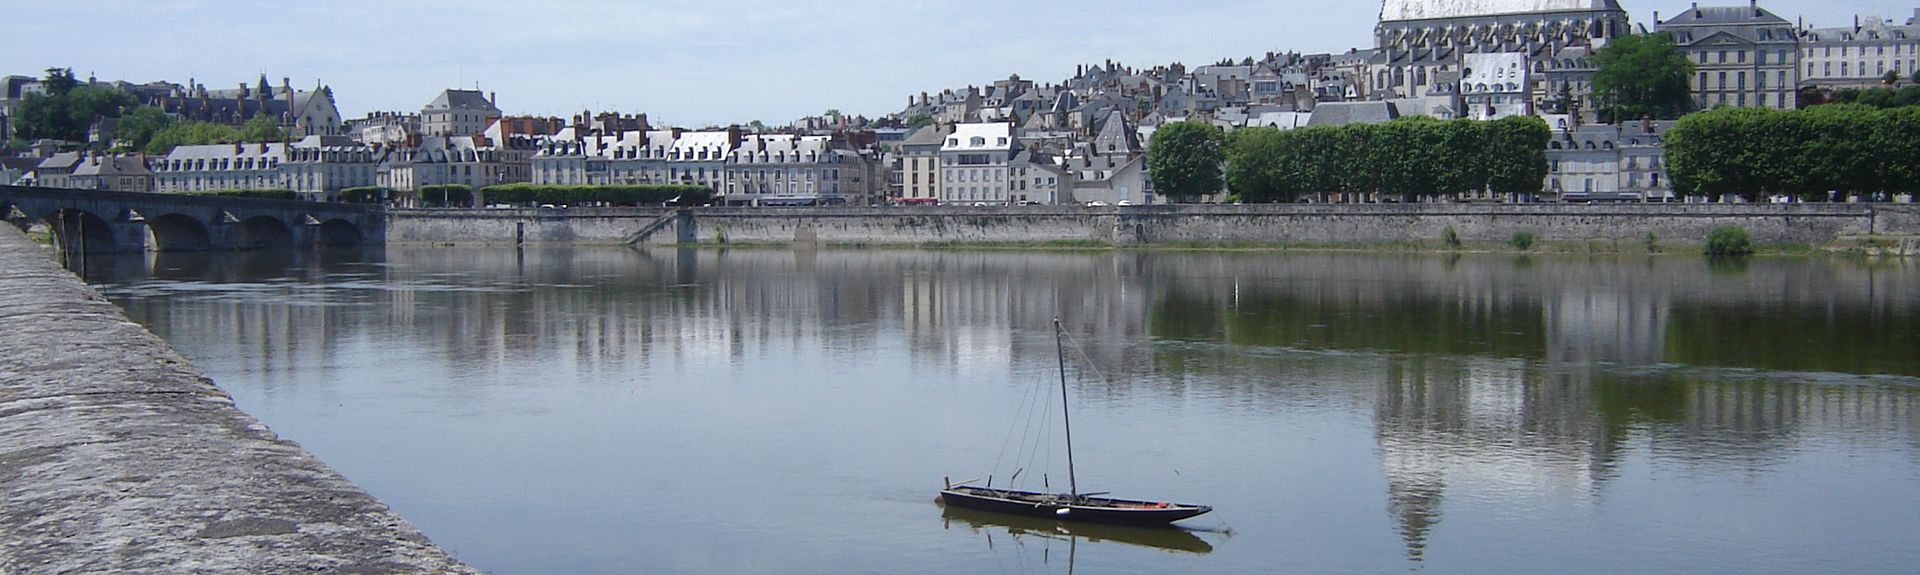 Beaugency Station, Beaugency, Centre-Val de Loire, France